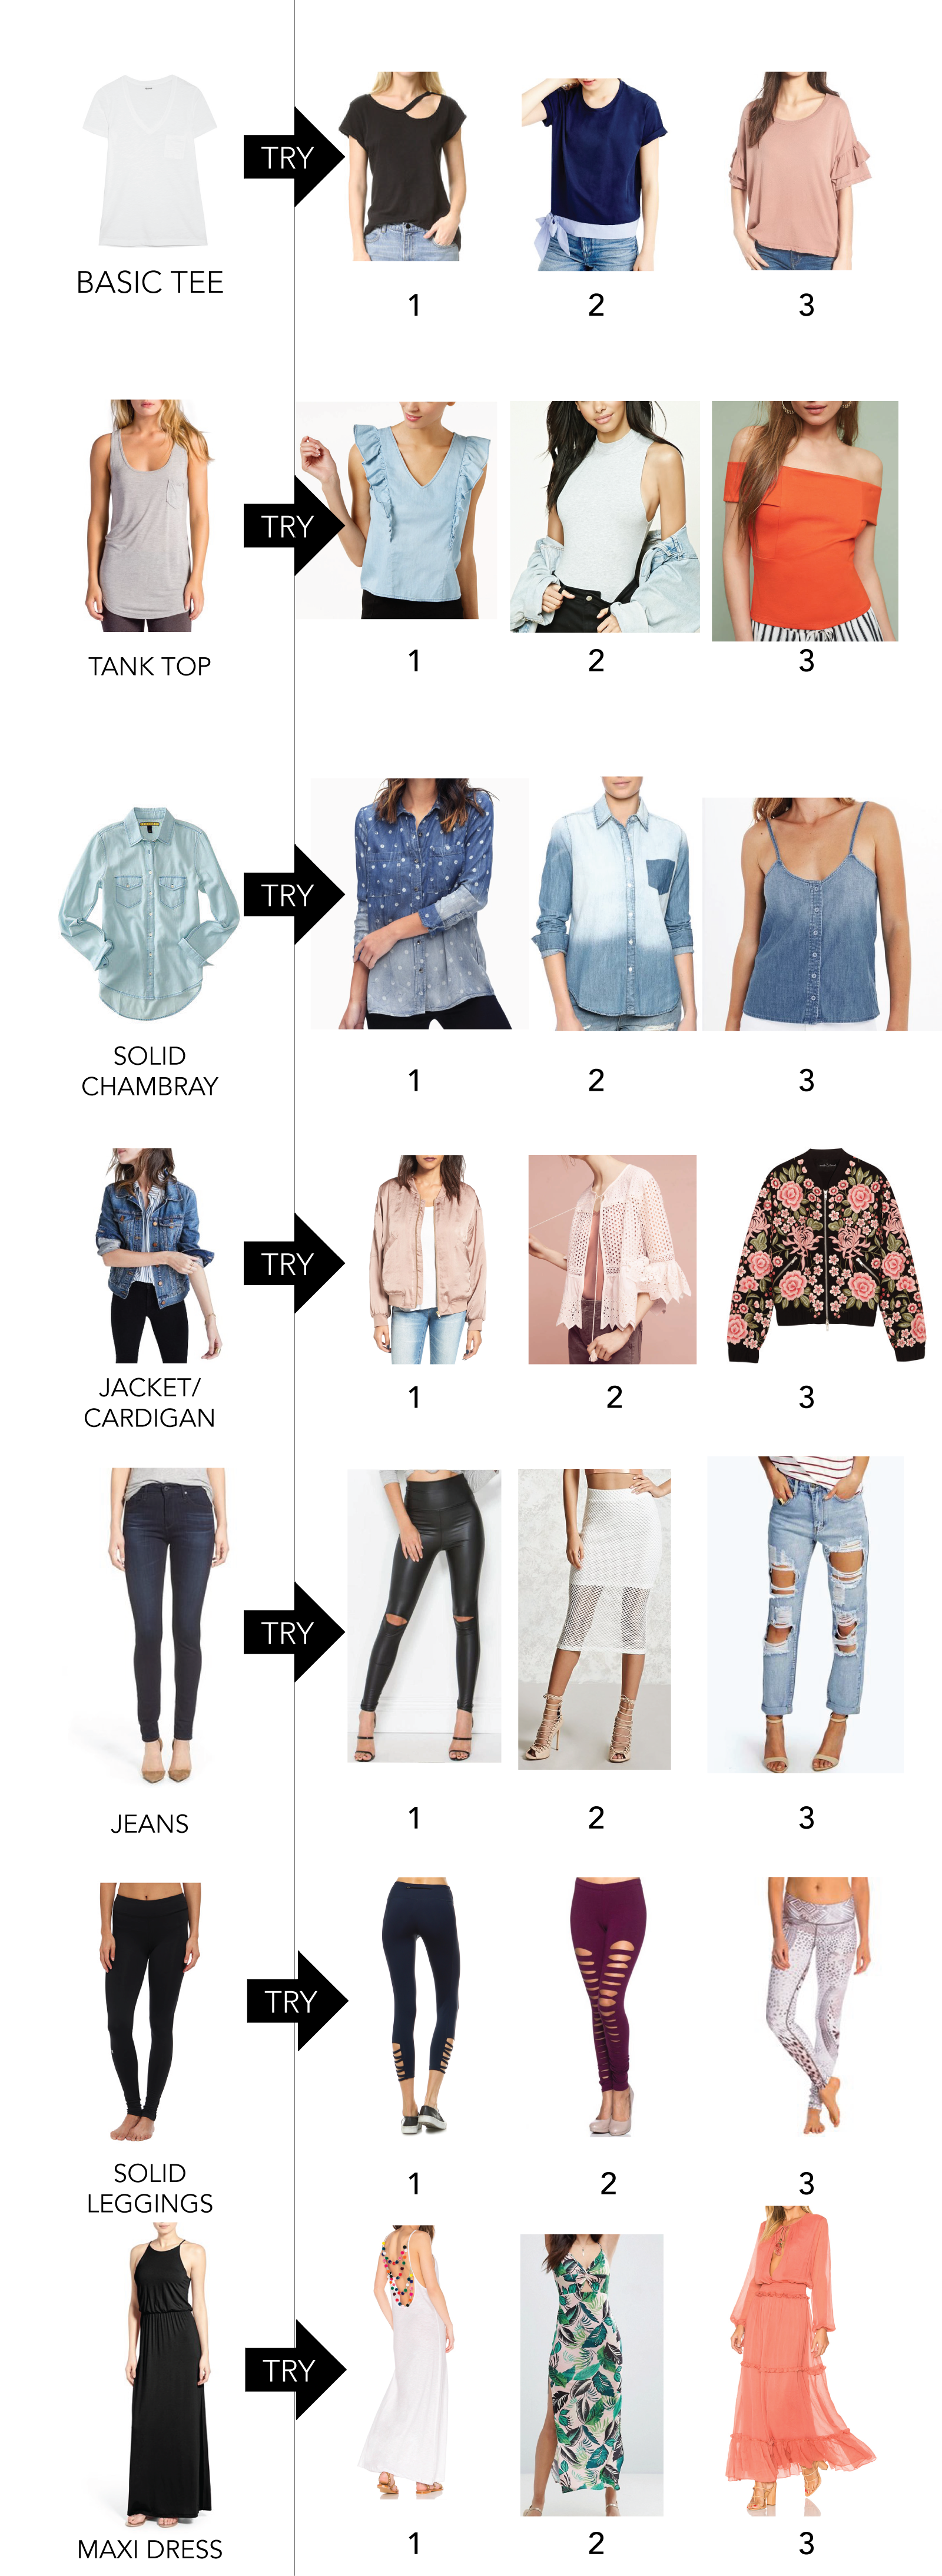 shopping for basics or have a wardrobe full of them? Here are ideas to replace what your typically grab for while shopping. Mix them with your basics!